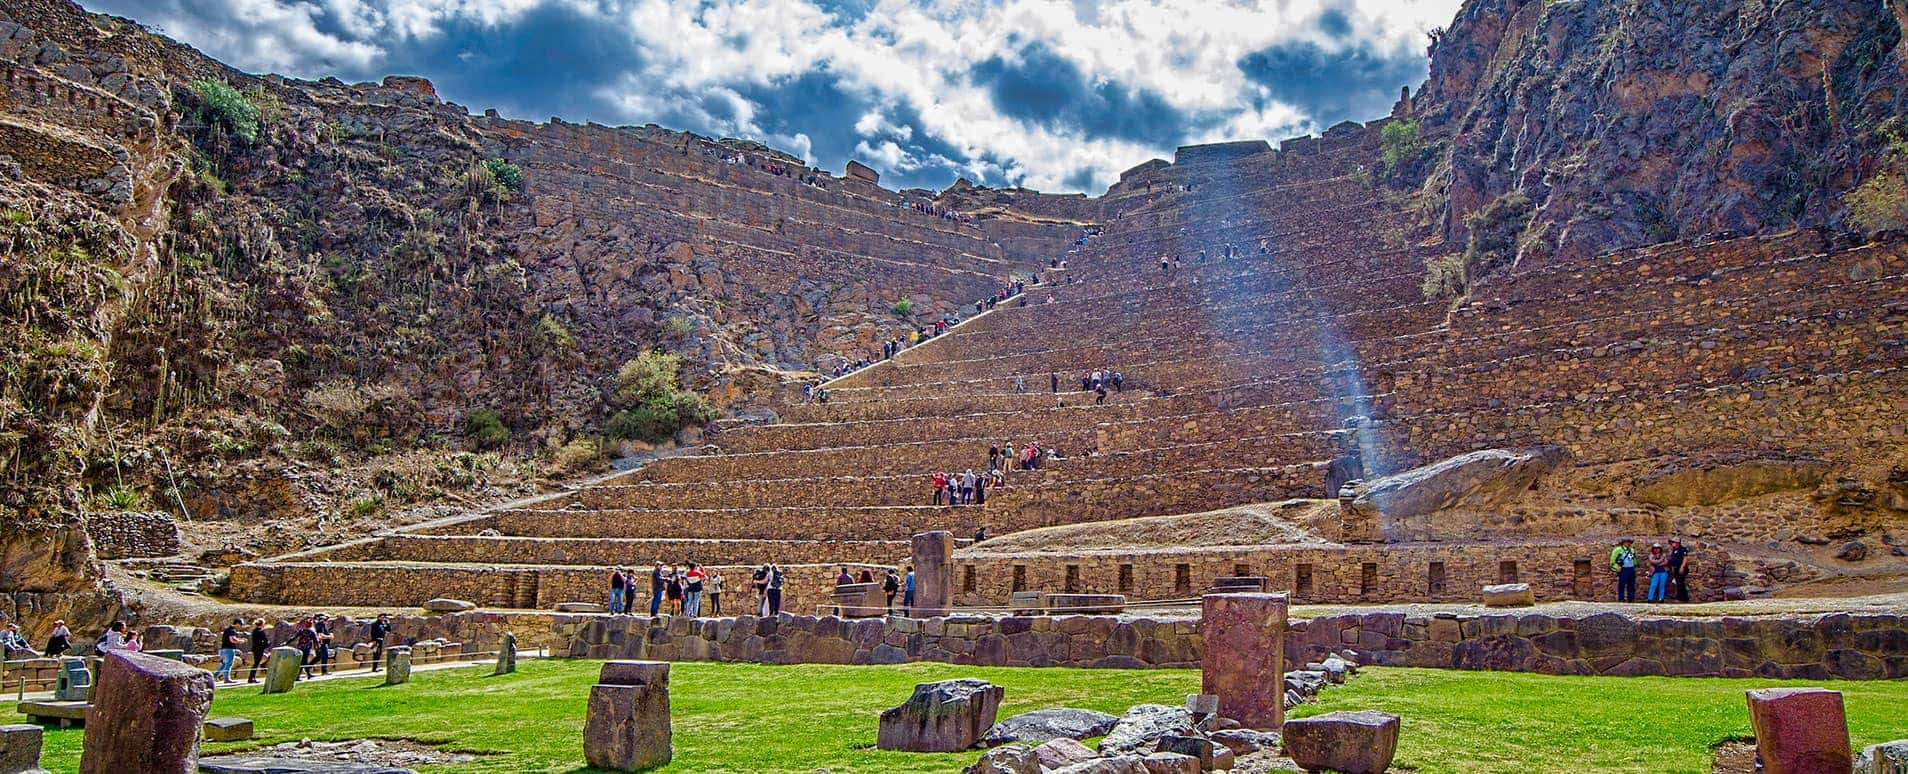 Sacred Valley of the Incas Ruins - Hotel Veronica View